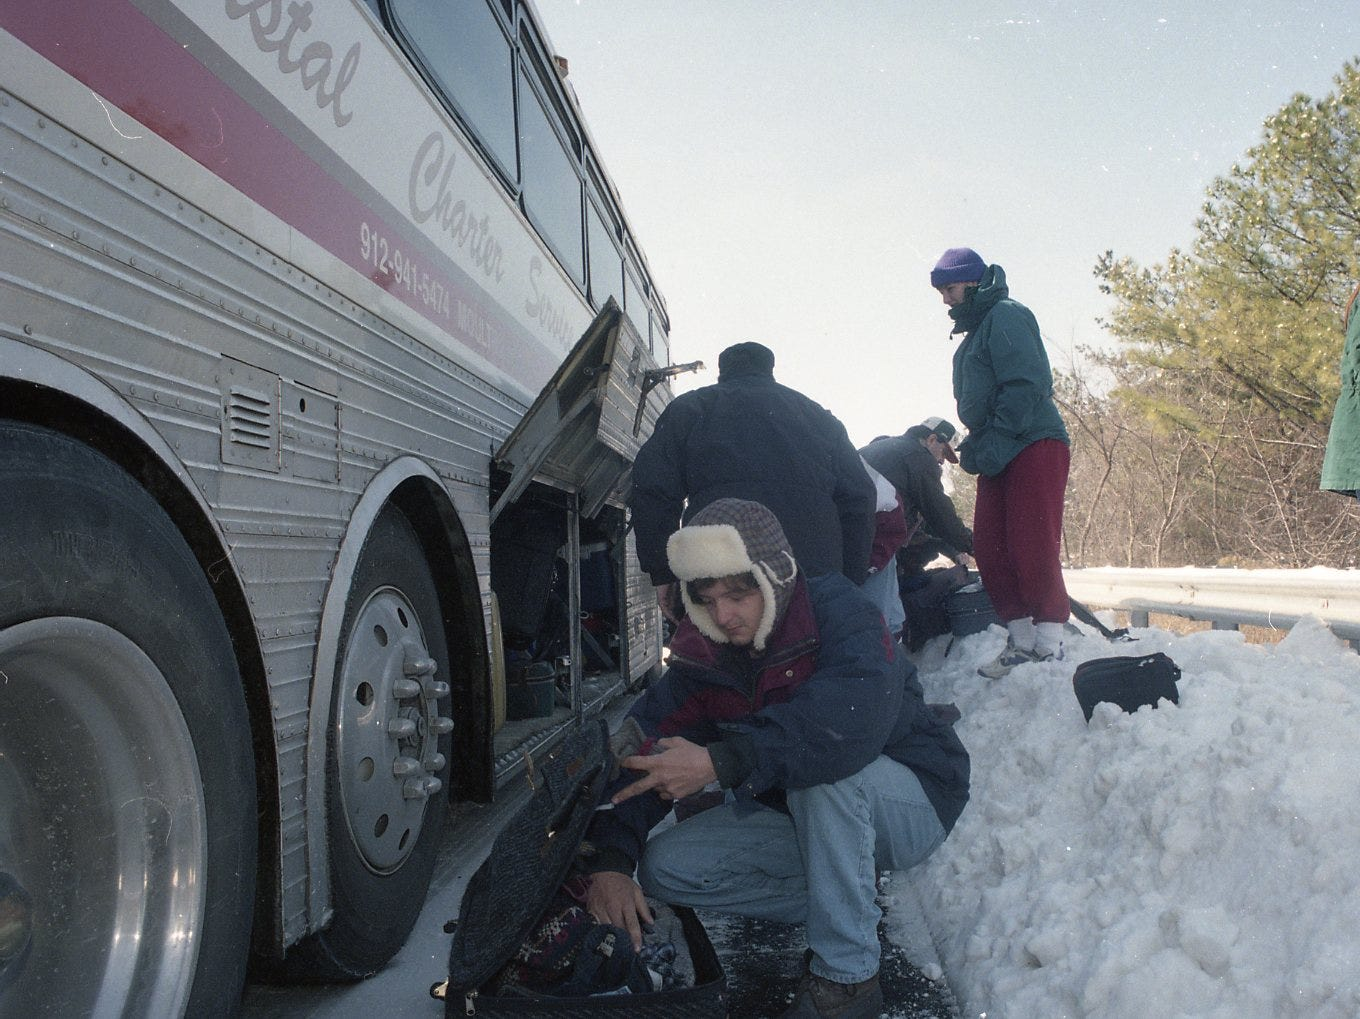 Kendall Howard, student at Bainridge College, goes through his personal belongings after their bus left them stranded on I-40 near the West Hills exit in February 1996. Students were transported by K-Trans to warm facilities until a bus was ready to carry them to their final destination.